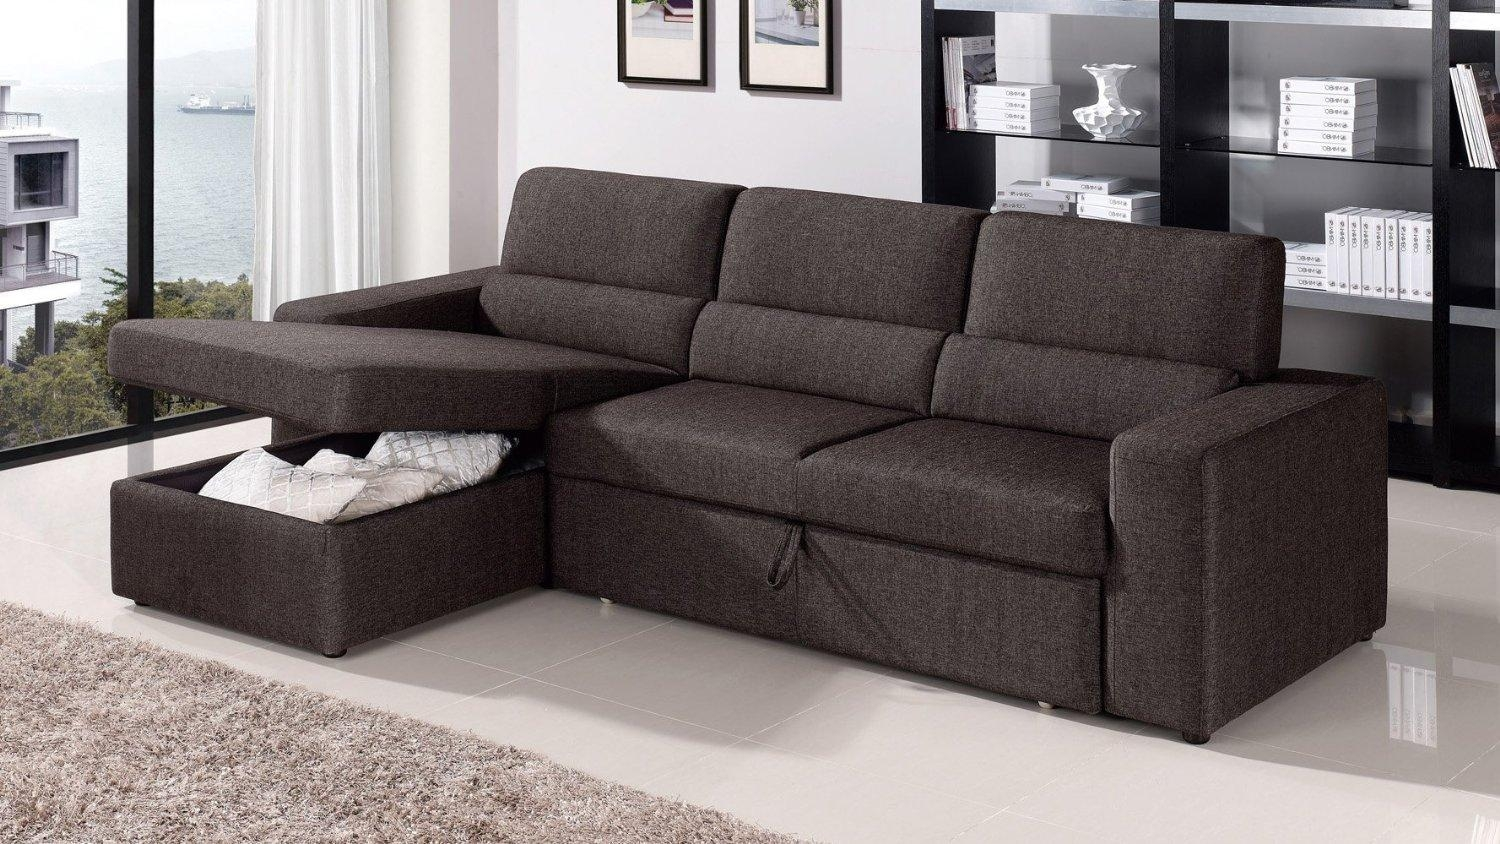 Unique Sectional Sofa With Sleeper And Chaise 69 On Full Sleeper With Sectional Sofas With Sleeper And Chaise (View 4 of 21)